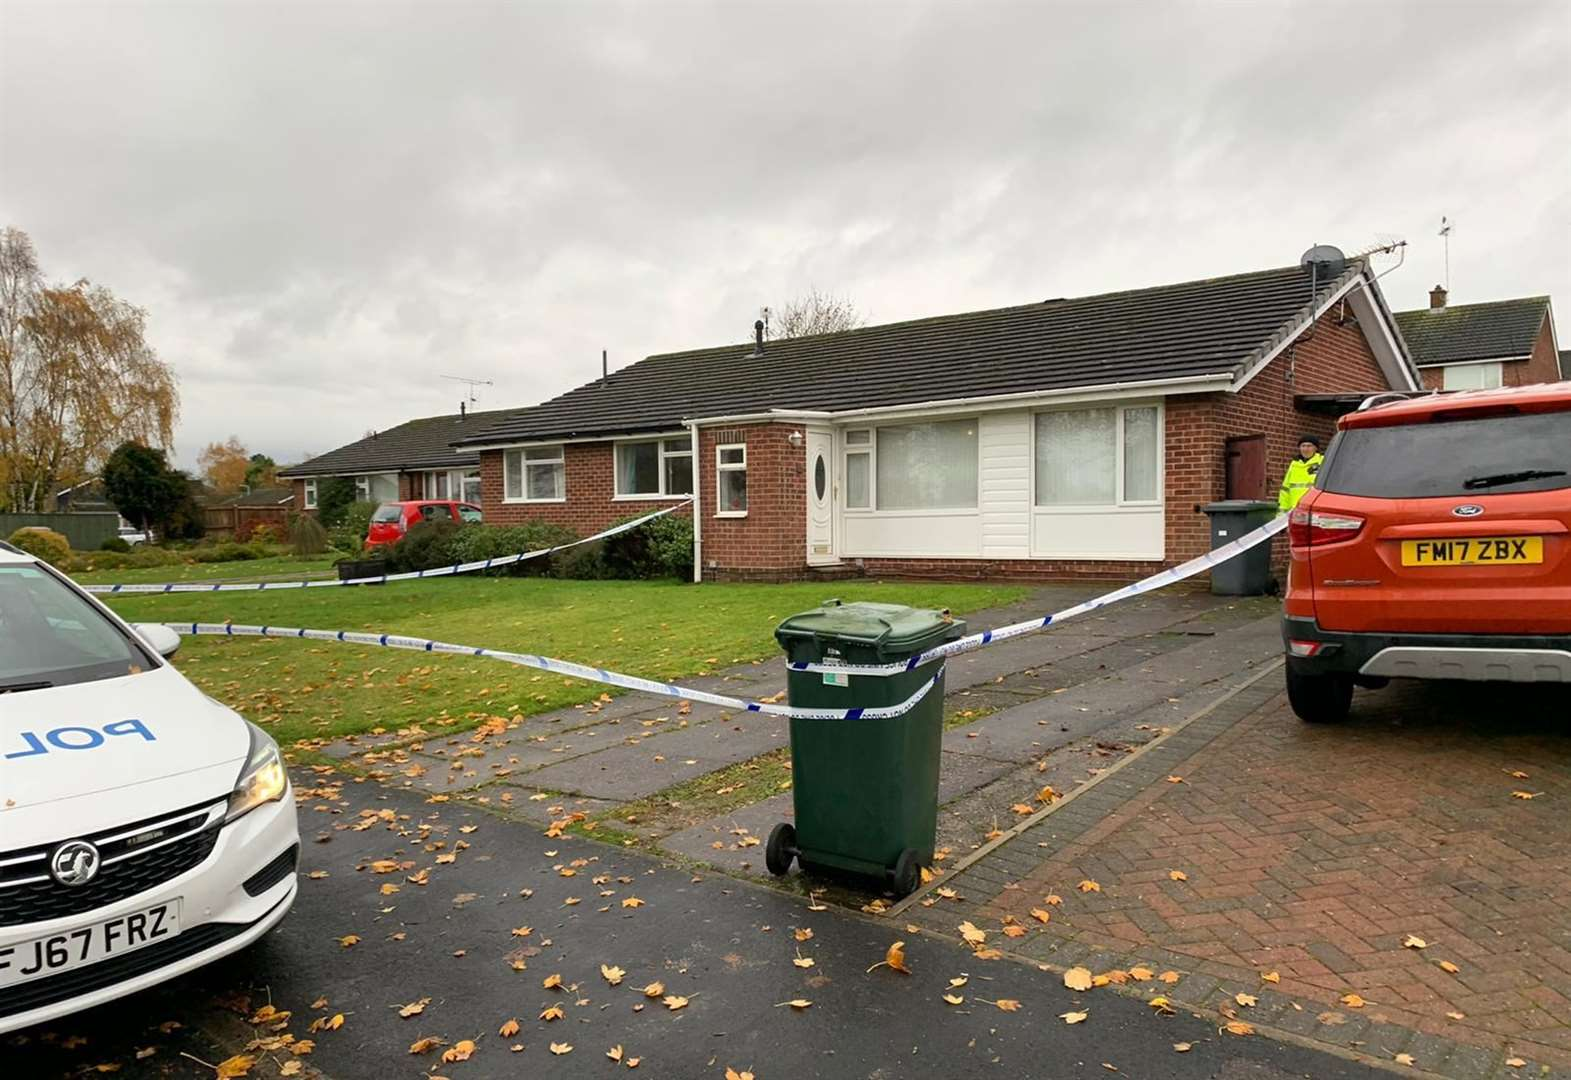 Man and woman who died at house in Bingham are identified